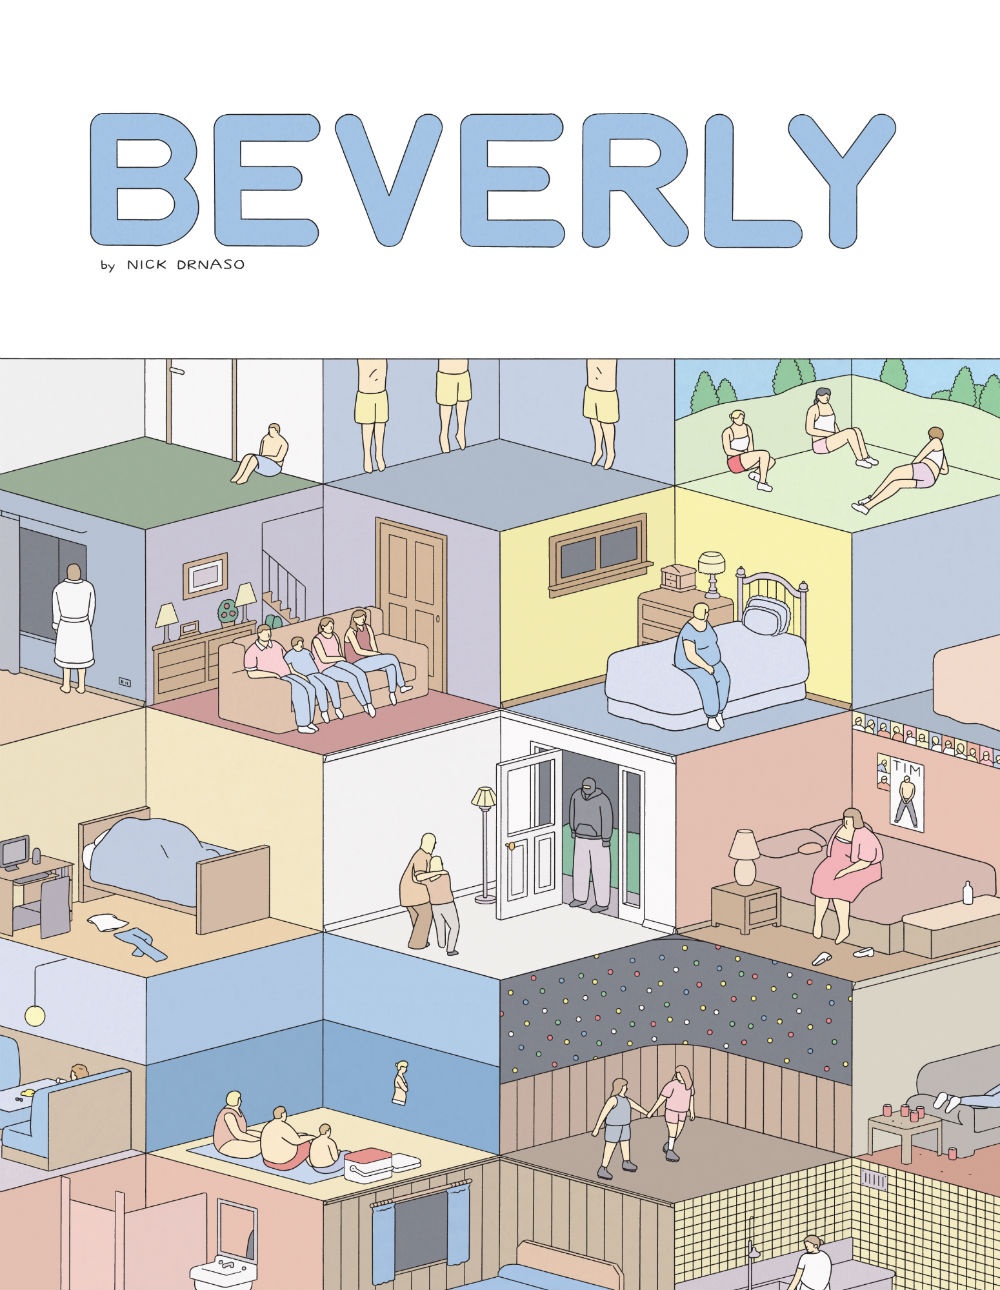 Red Ants Underneath: Nick Drnaso's Beverly is a Soft Palette of Middle-American Suburban Ennui Porn Shoved Into Little Boxes